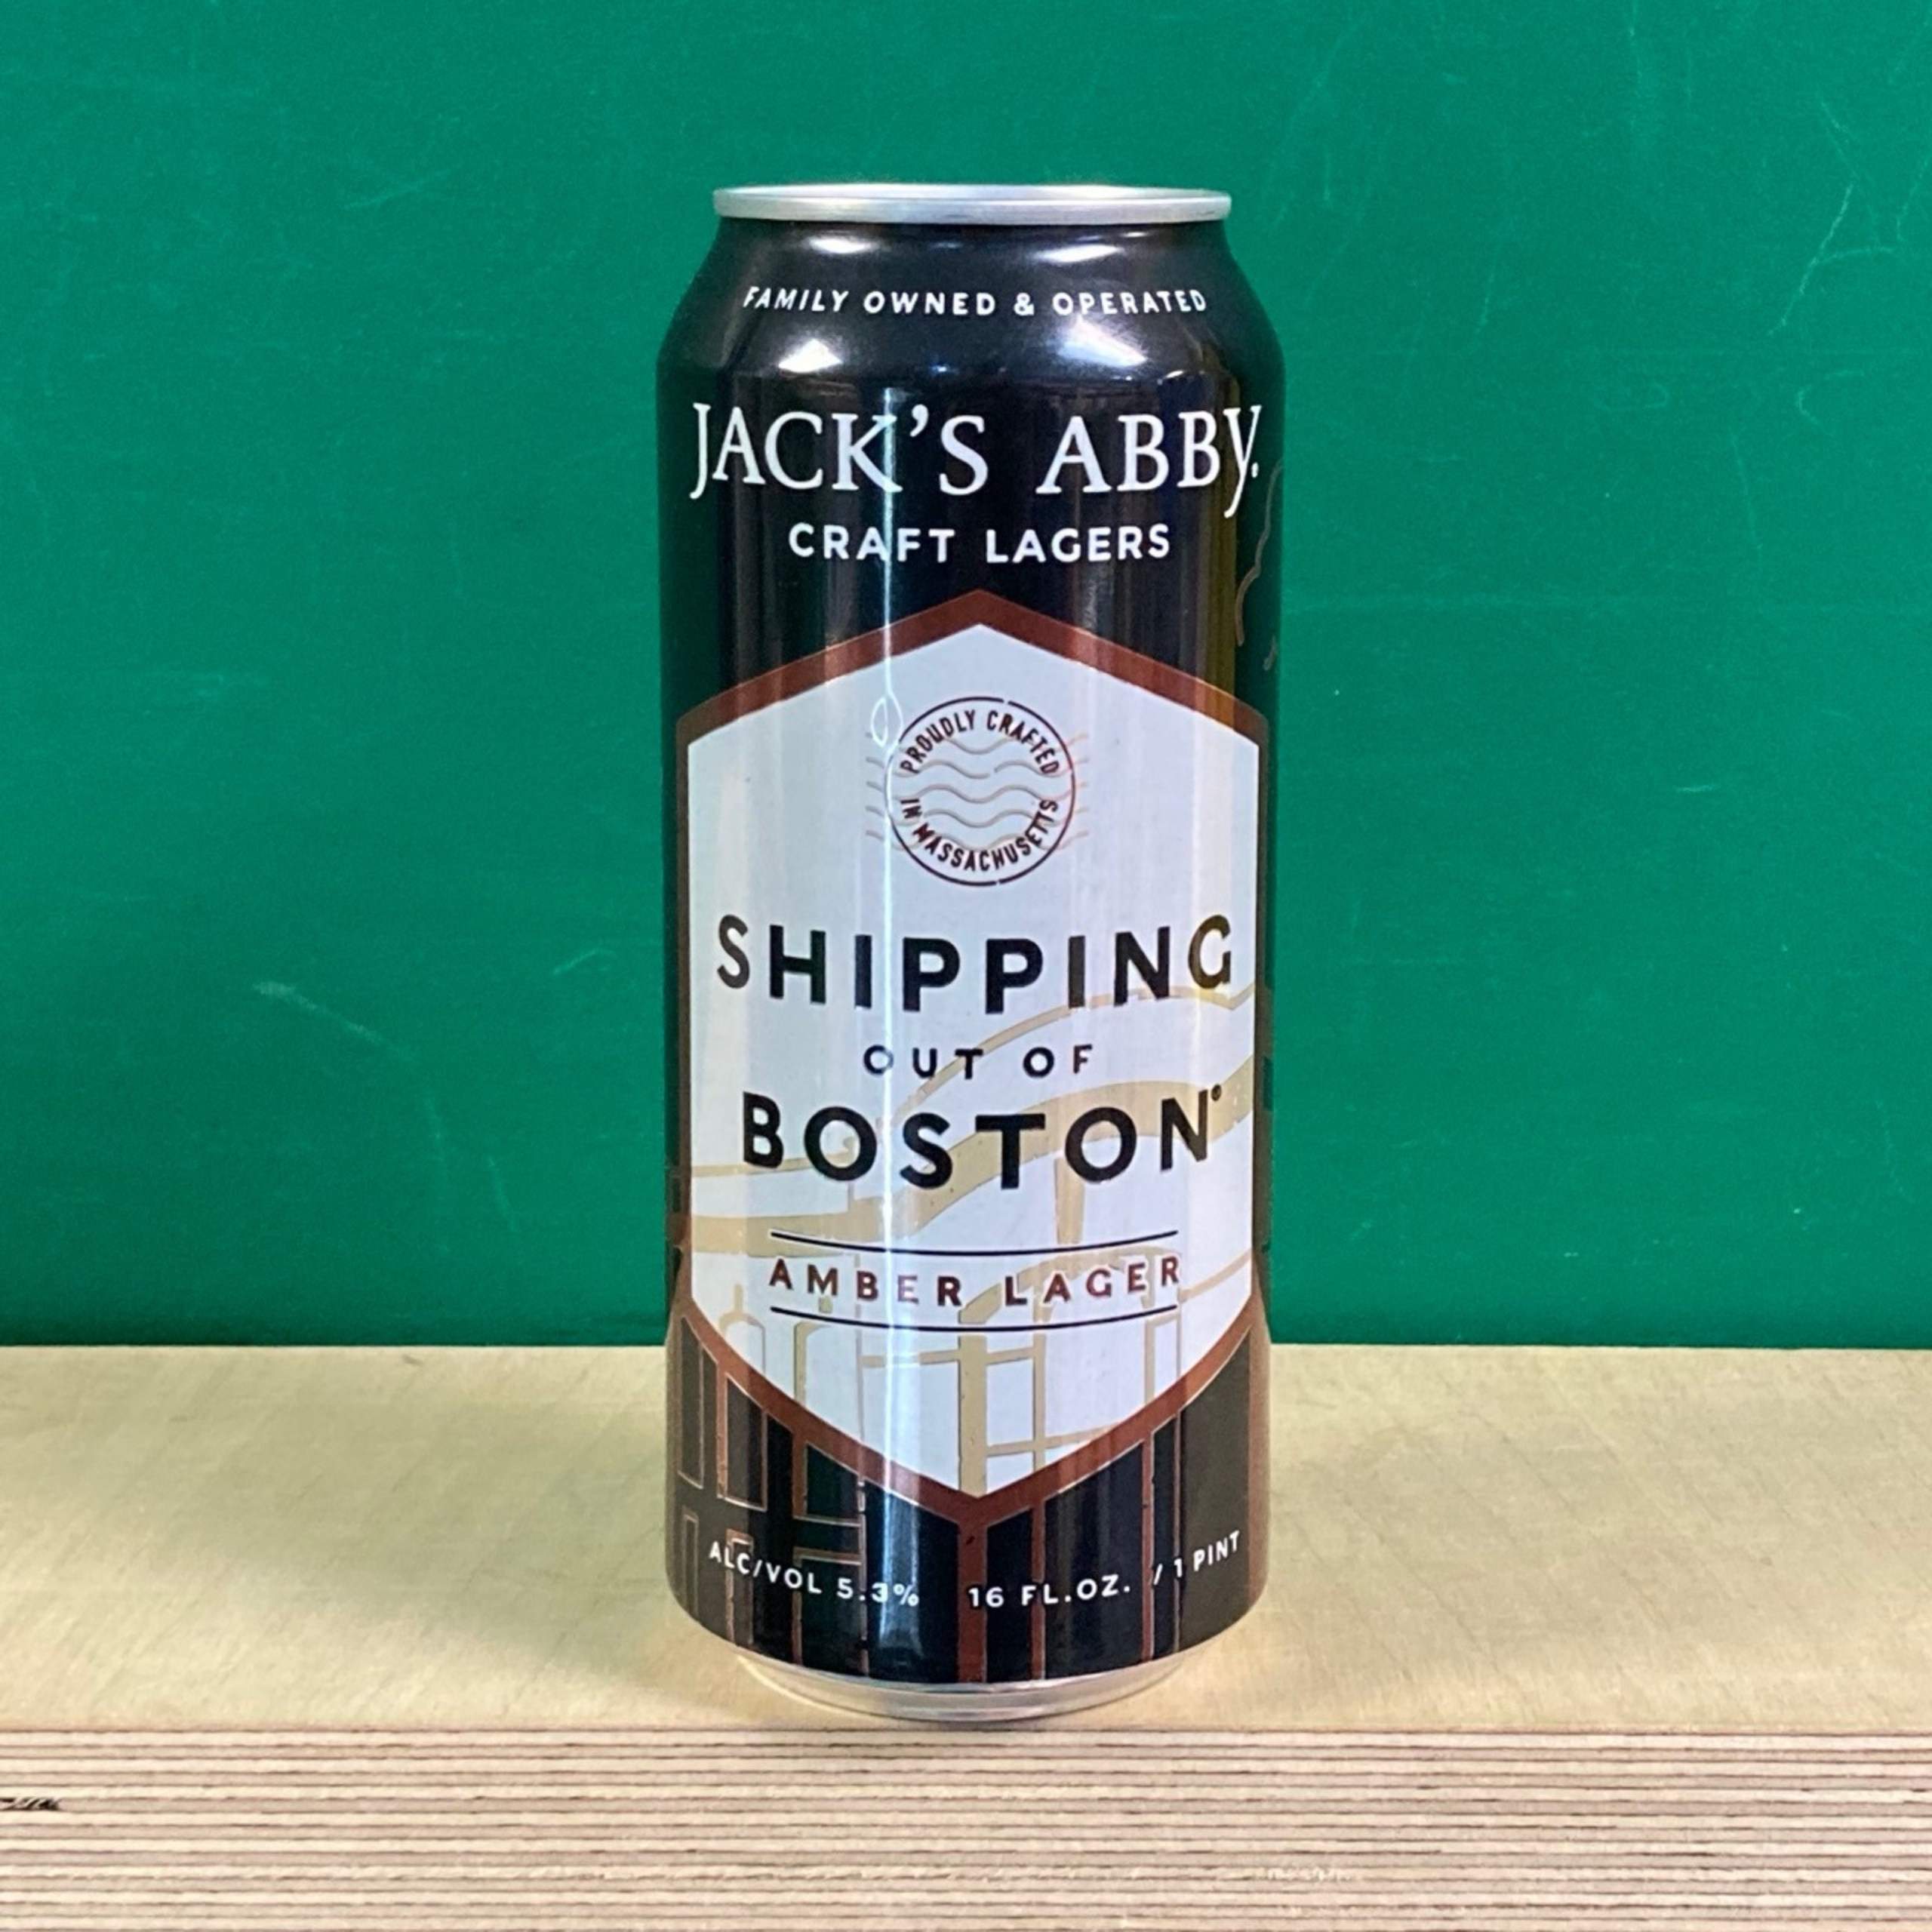 Jack's Abby Shipping Out Boston